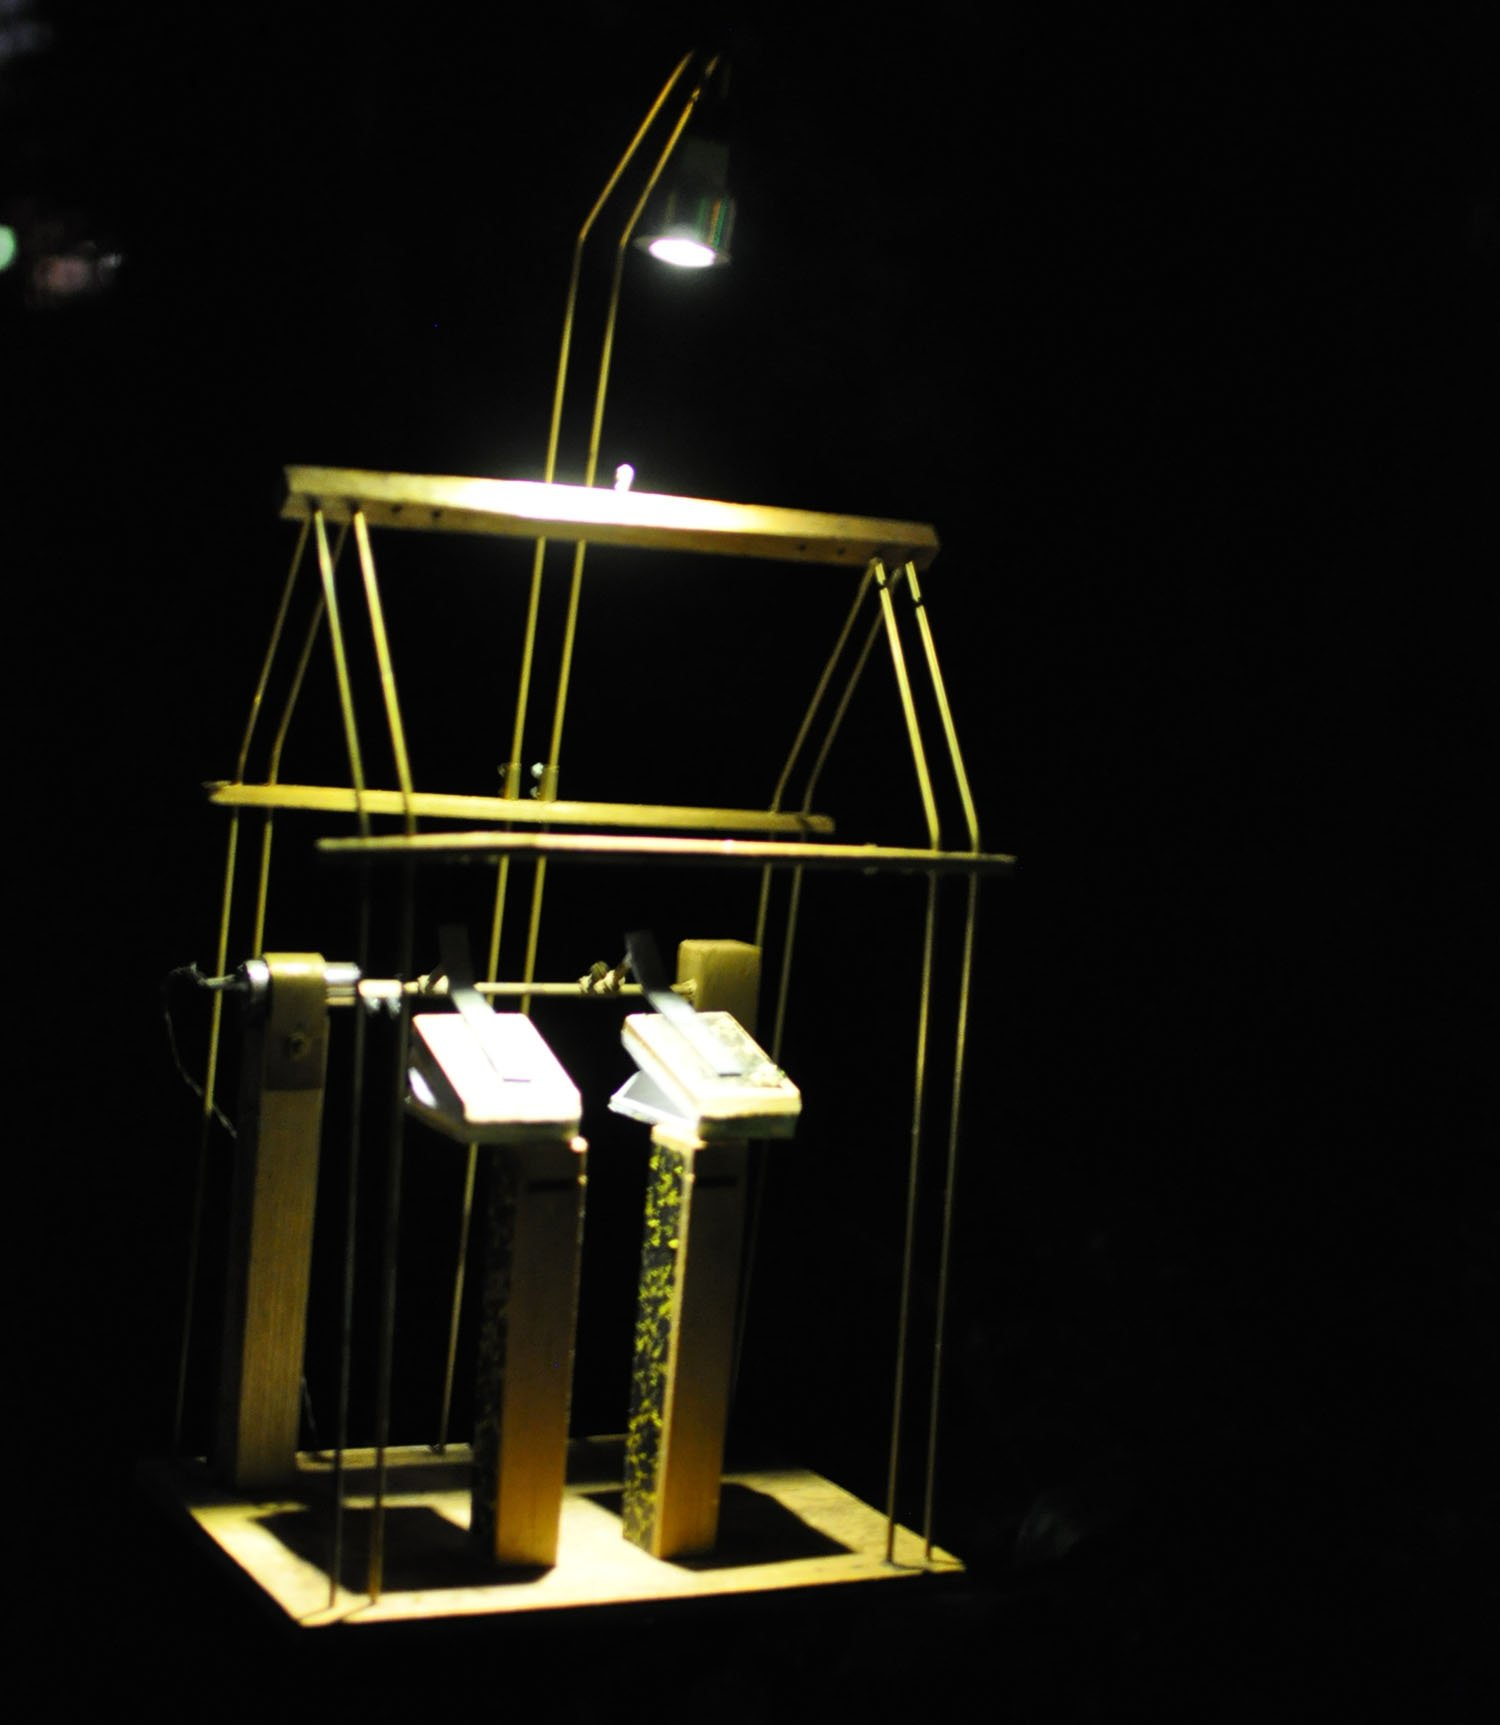 Illuminating York 2015 - The Museum Gardens - Mechanical device with Cuckoo sound effect